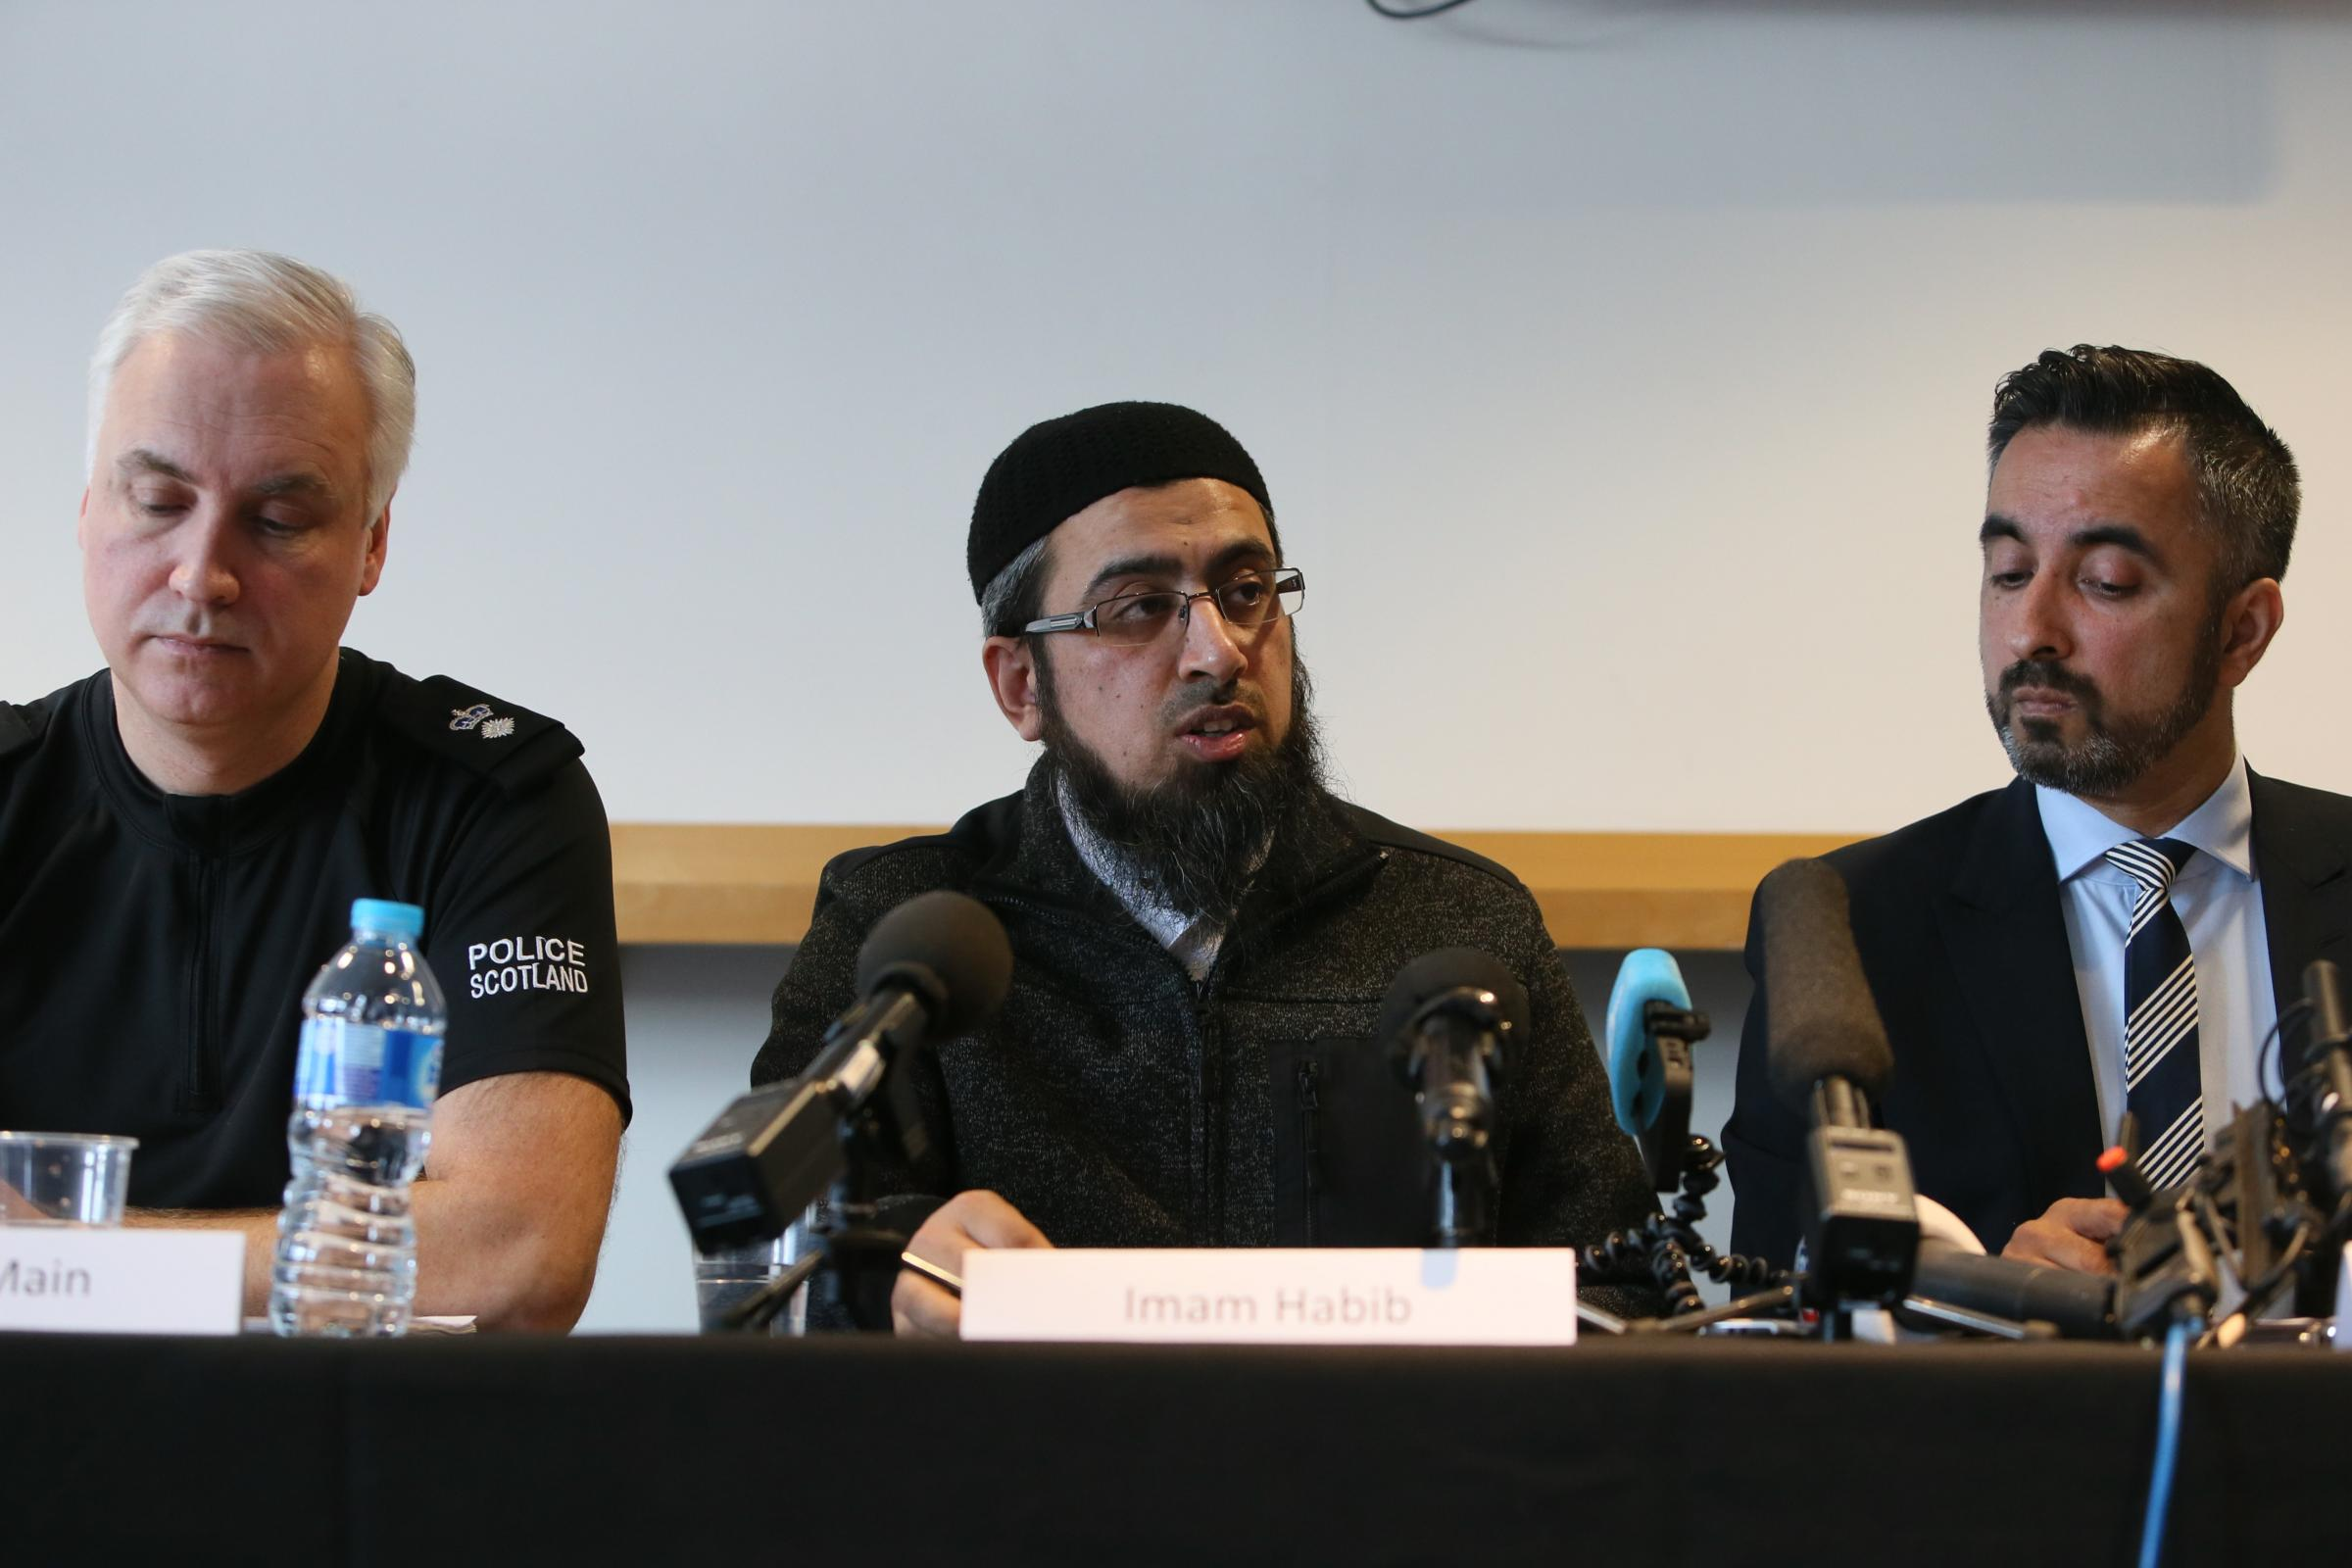 Speakers include Imam Habib ur Rehman, lawyer Aamer Anwar and representatives from Police Scotland